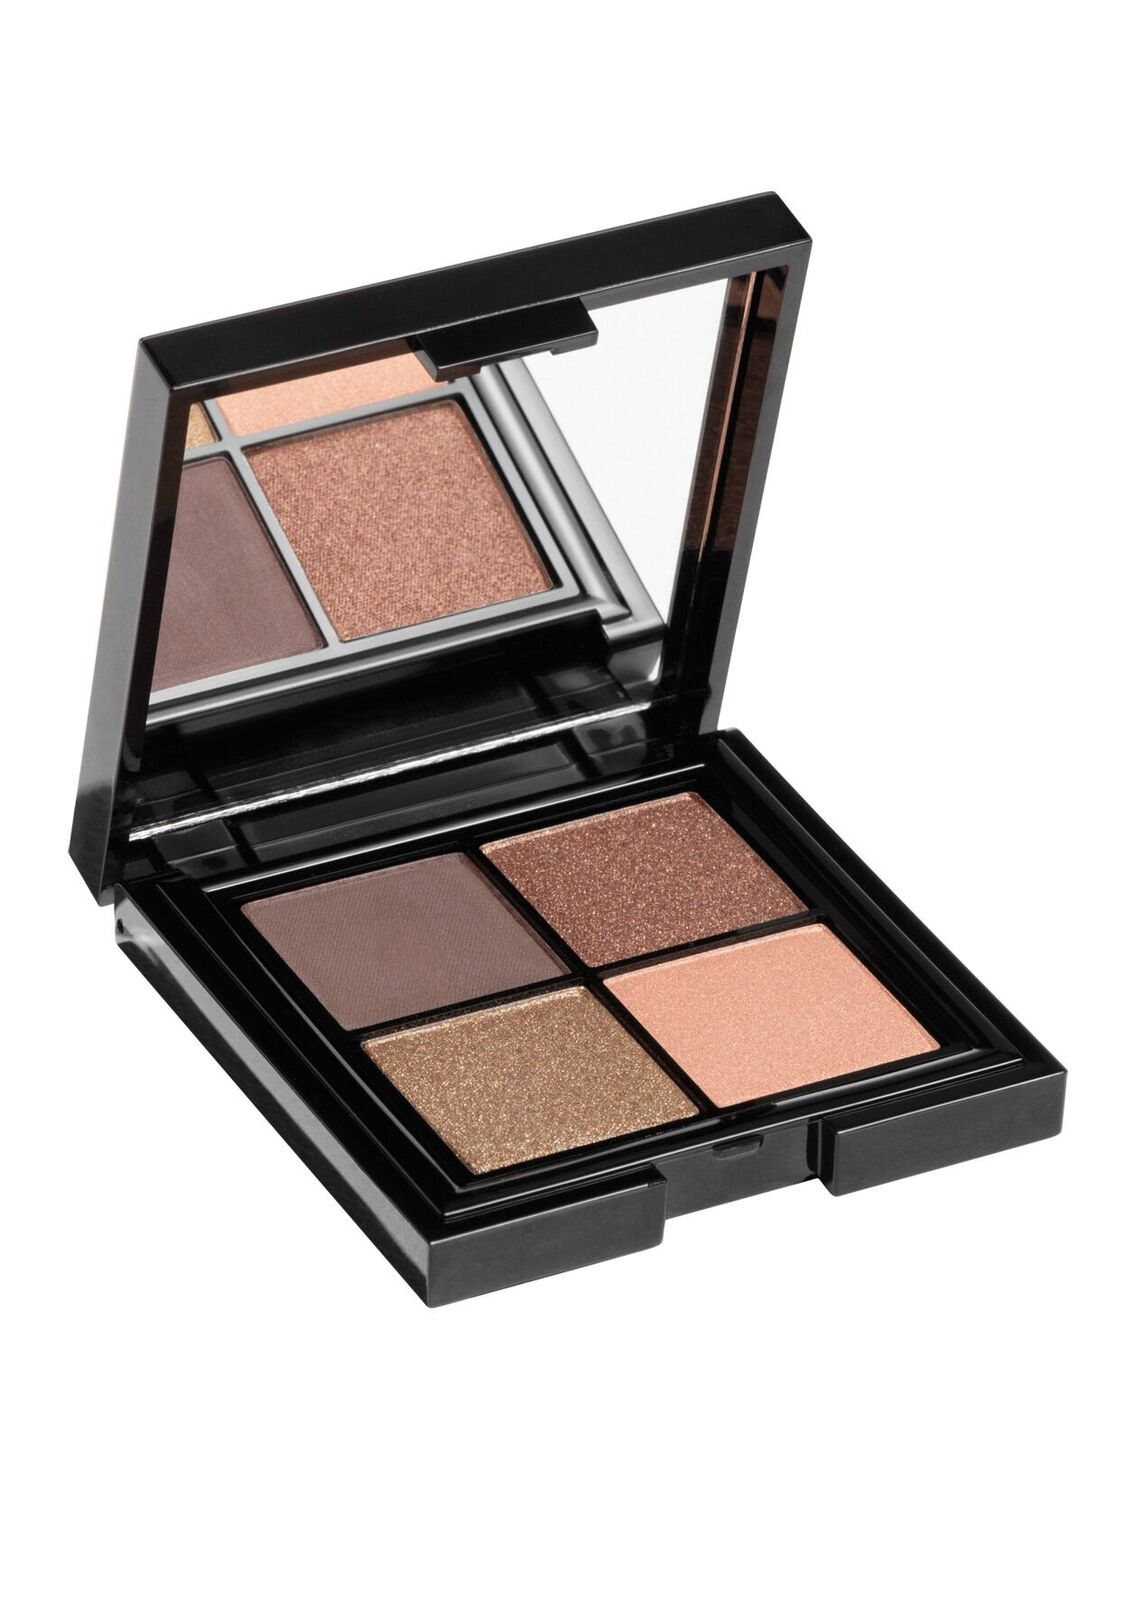 Bisou Marron Eyeshadow Palette & Other Stories_preview.jpeg